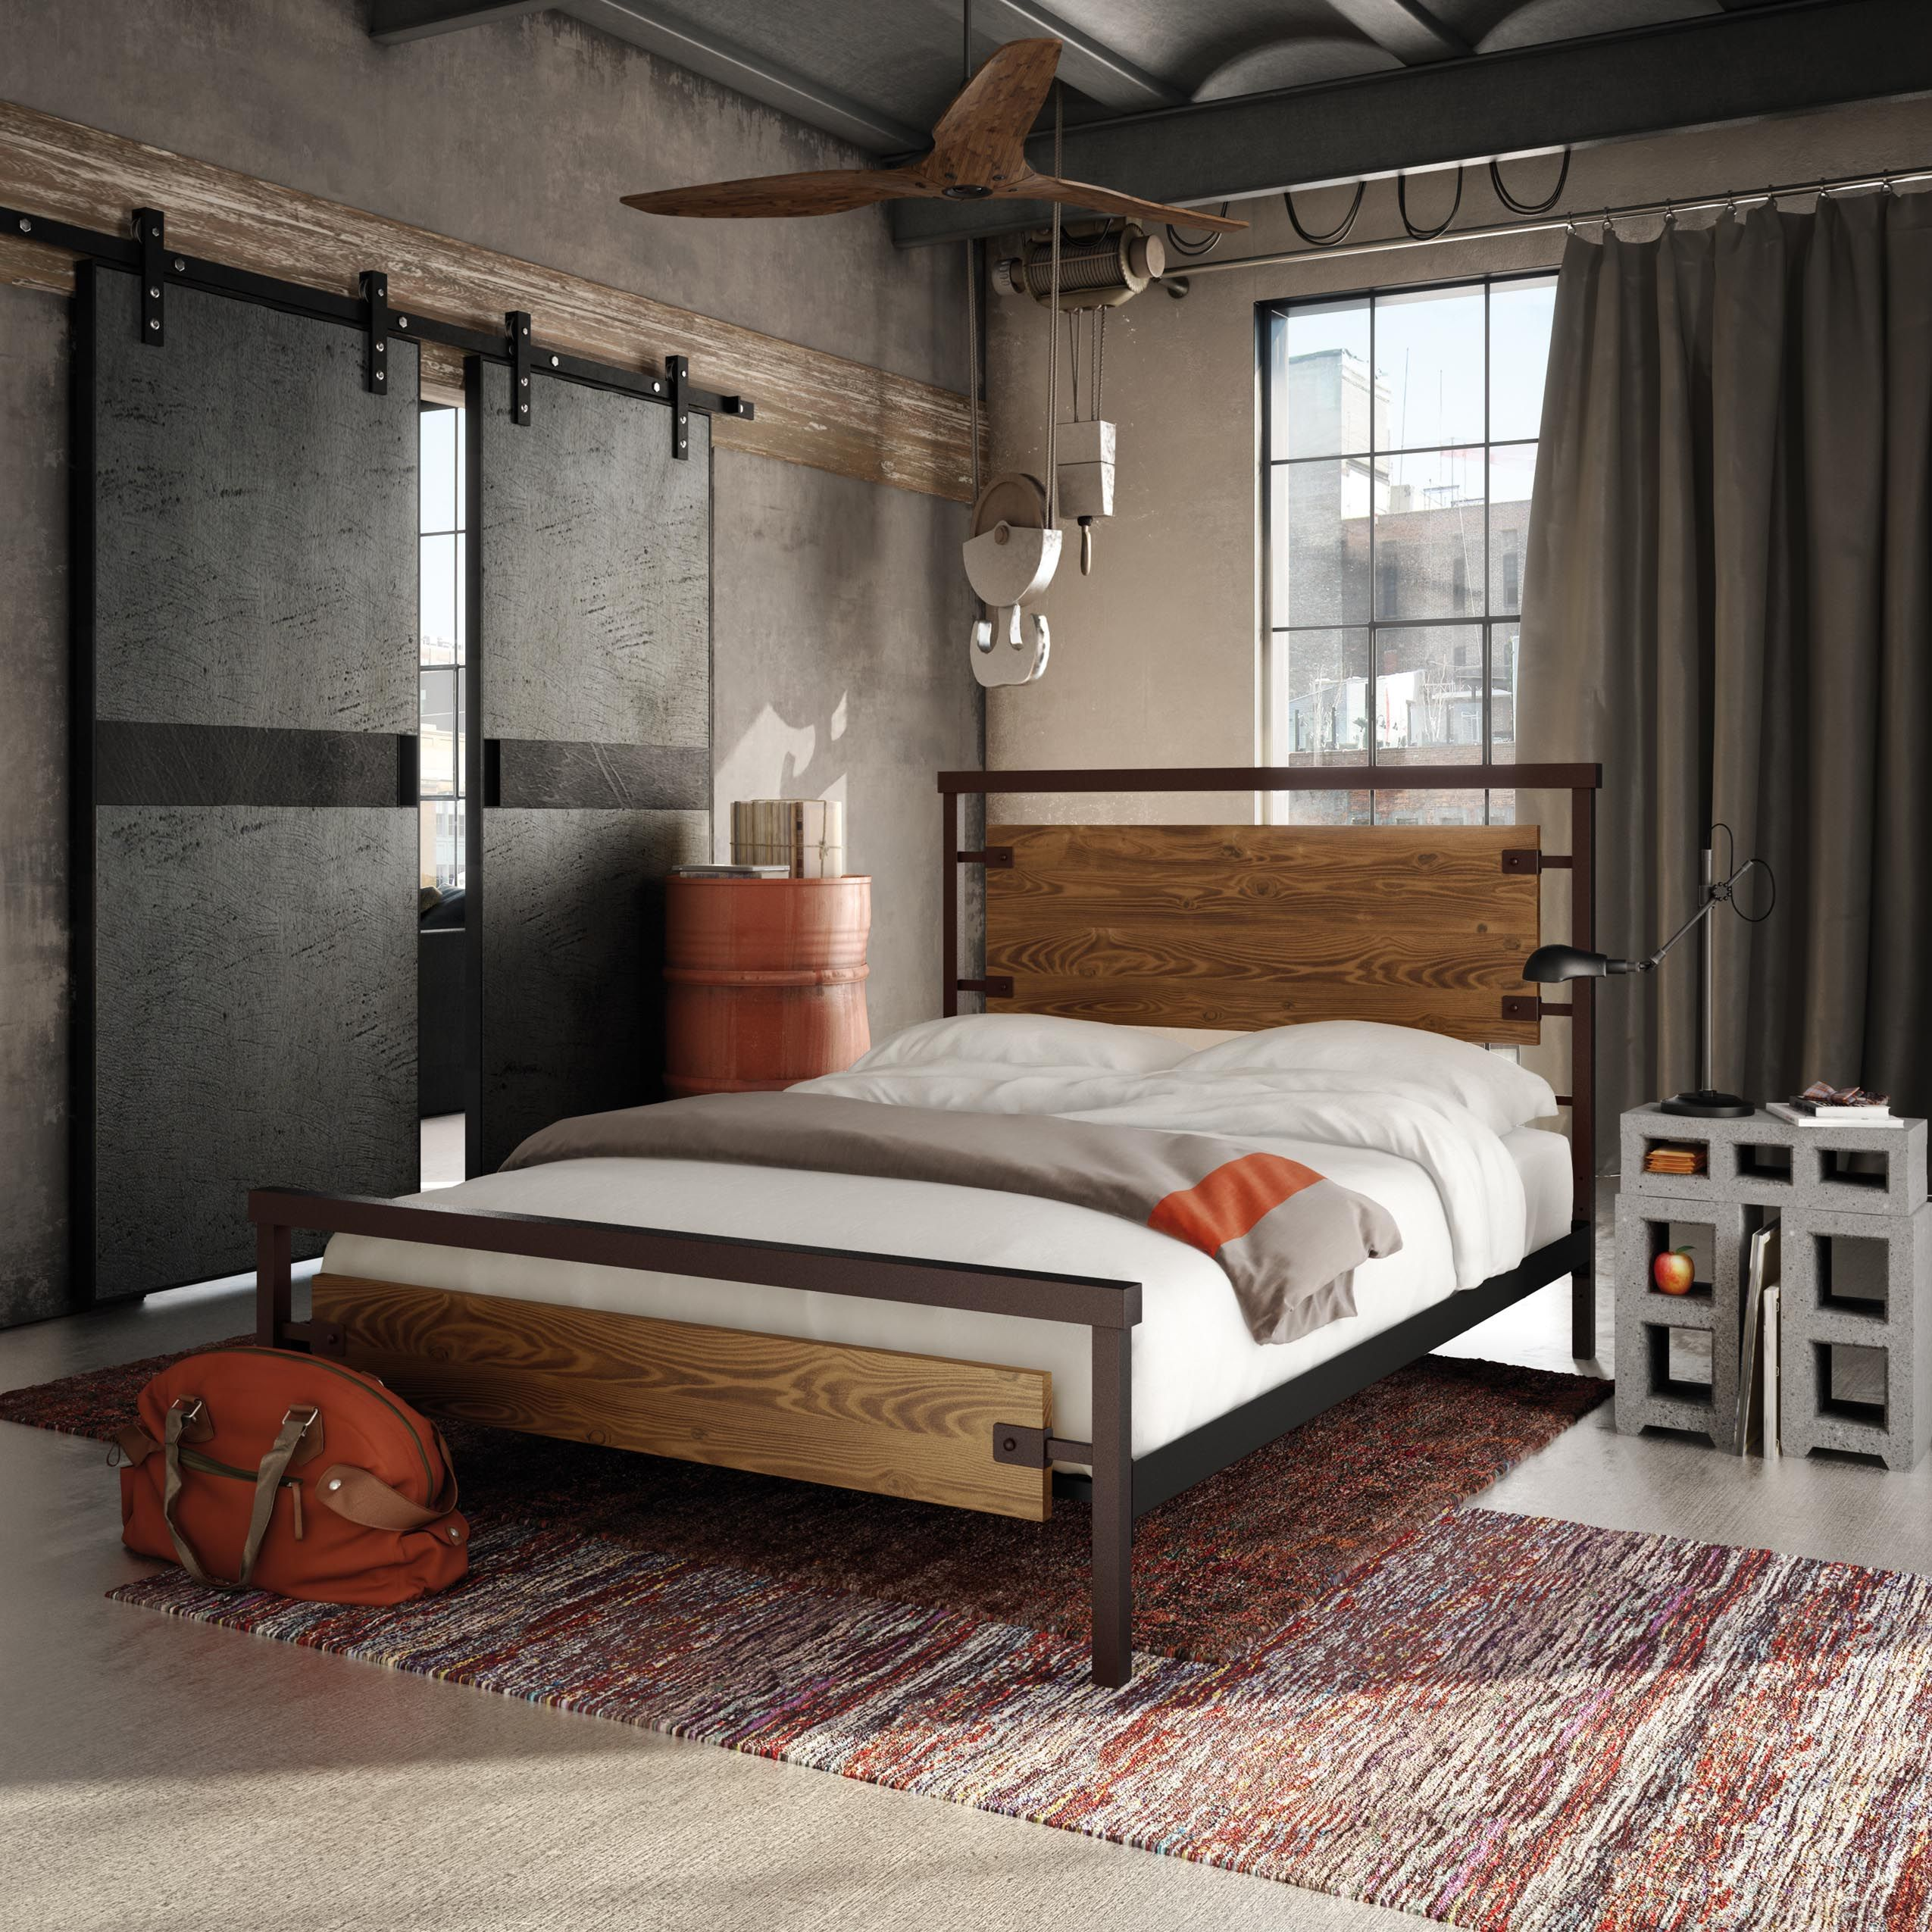 Amisco Factory Bed 12389 Furniture Bedroom Industrial Collection Contemporary